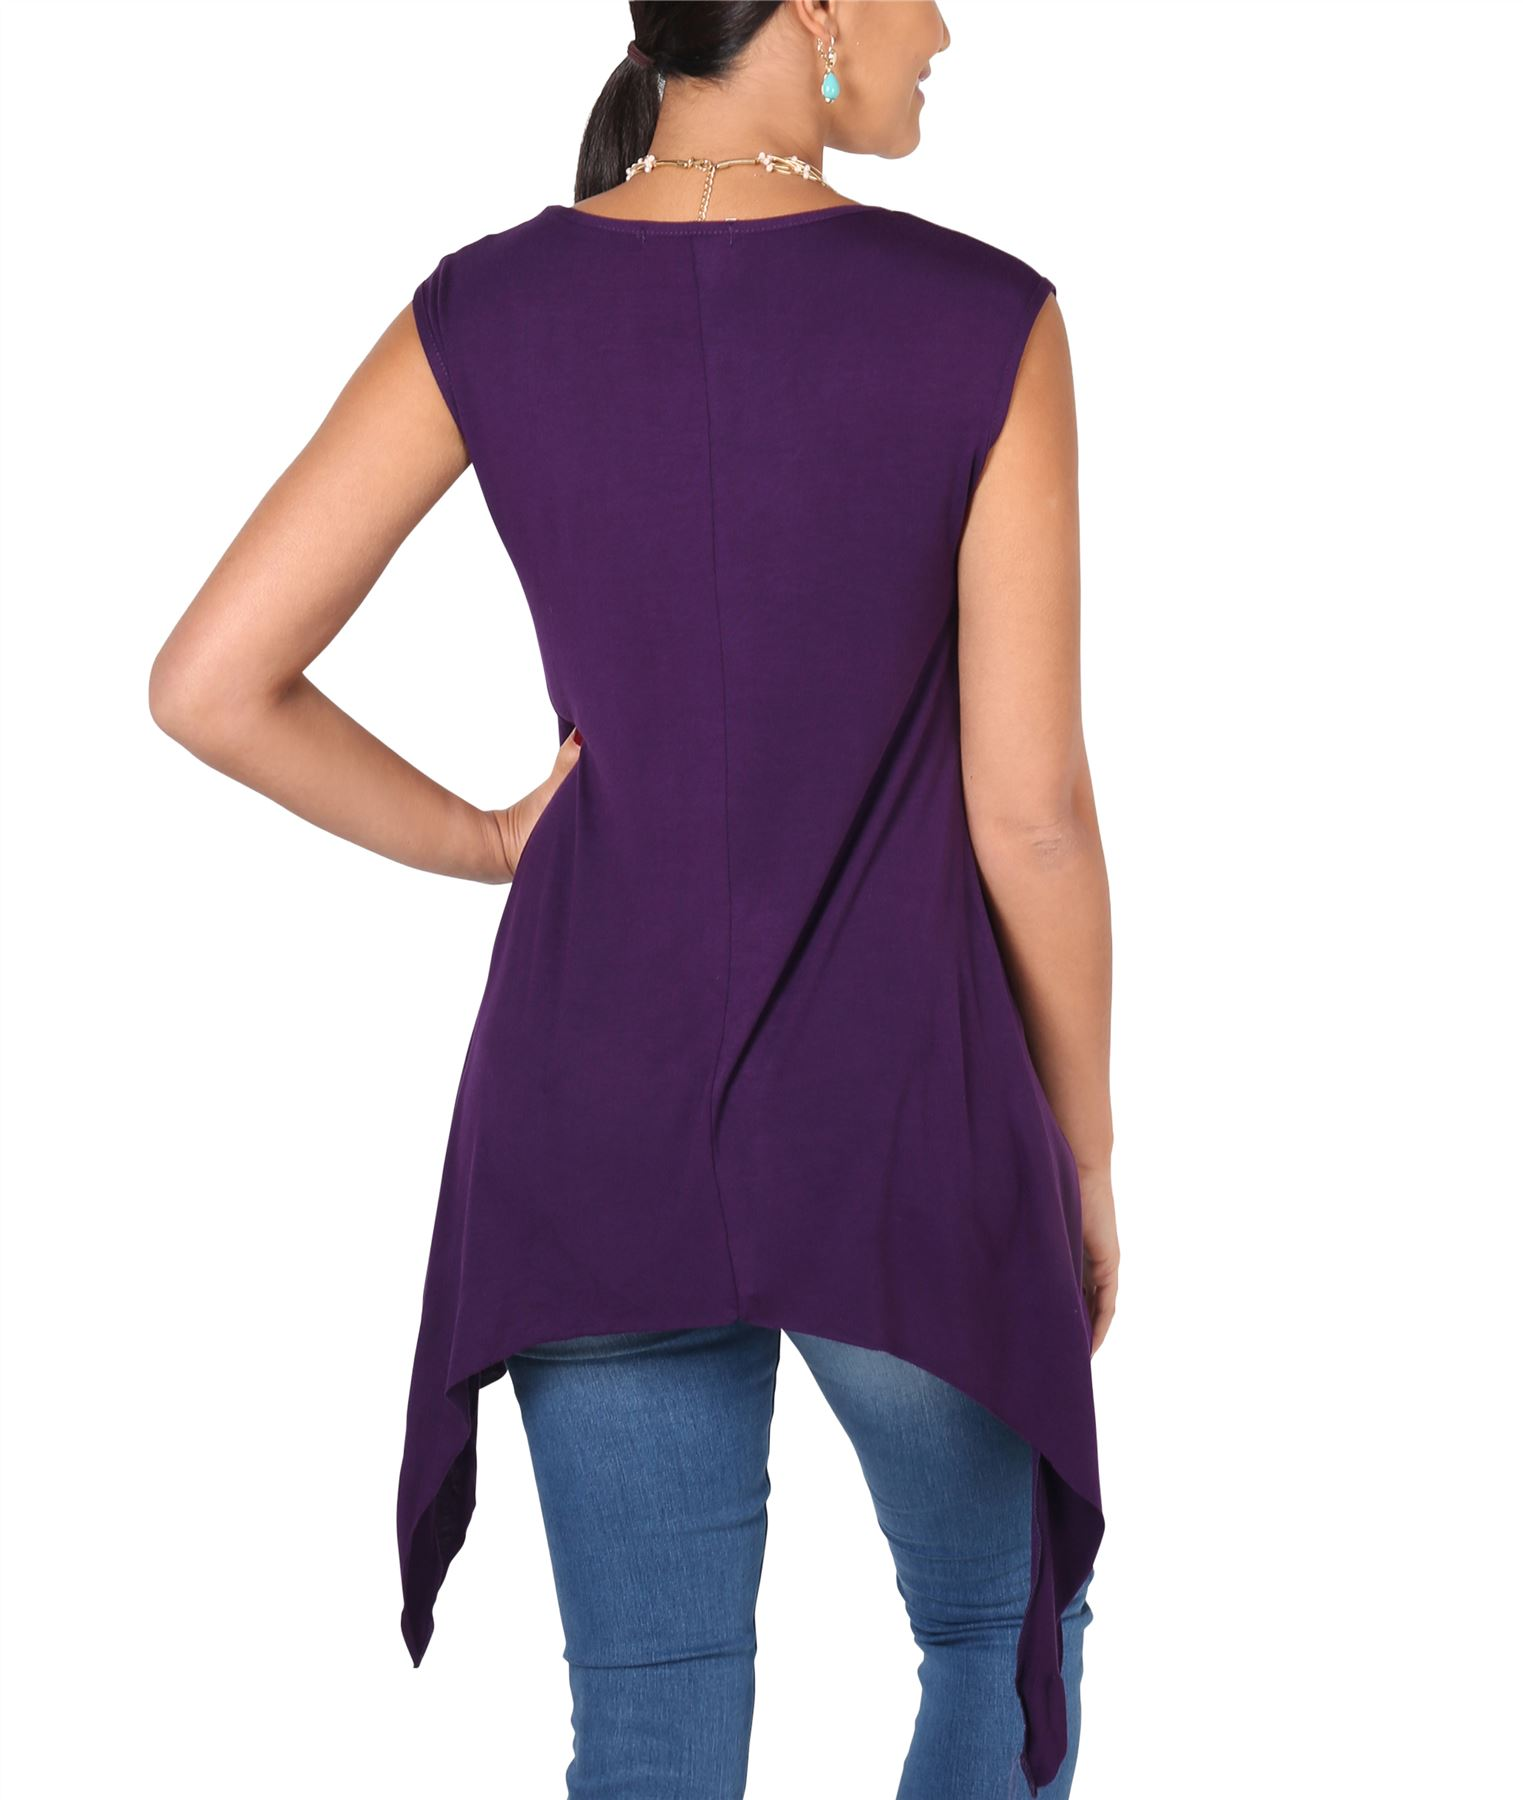 Women-Long-Top-Sleeveless-Pleated-Tee-Shirt-Tunic-Jersey-Stretch-Loose-Fit thumbnail 23